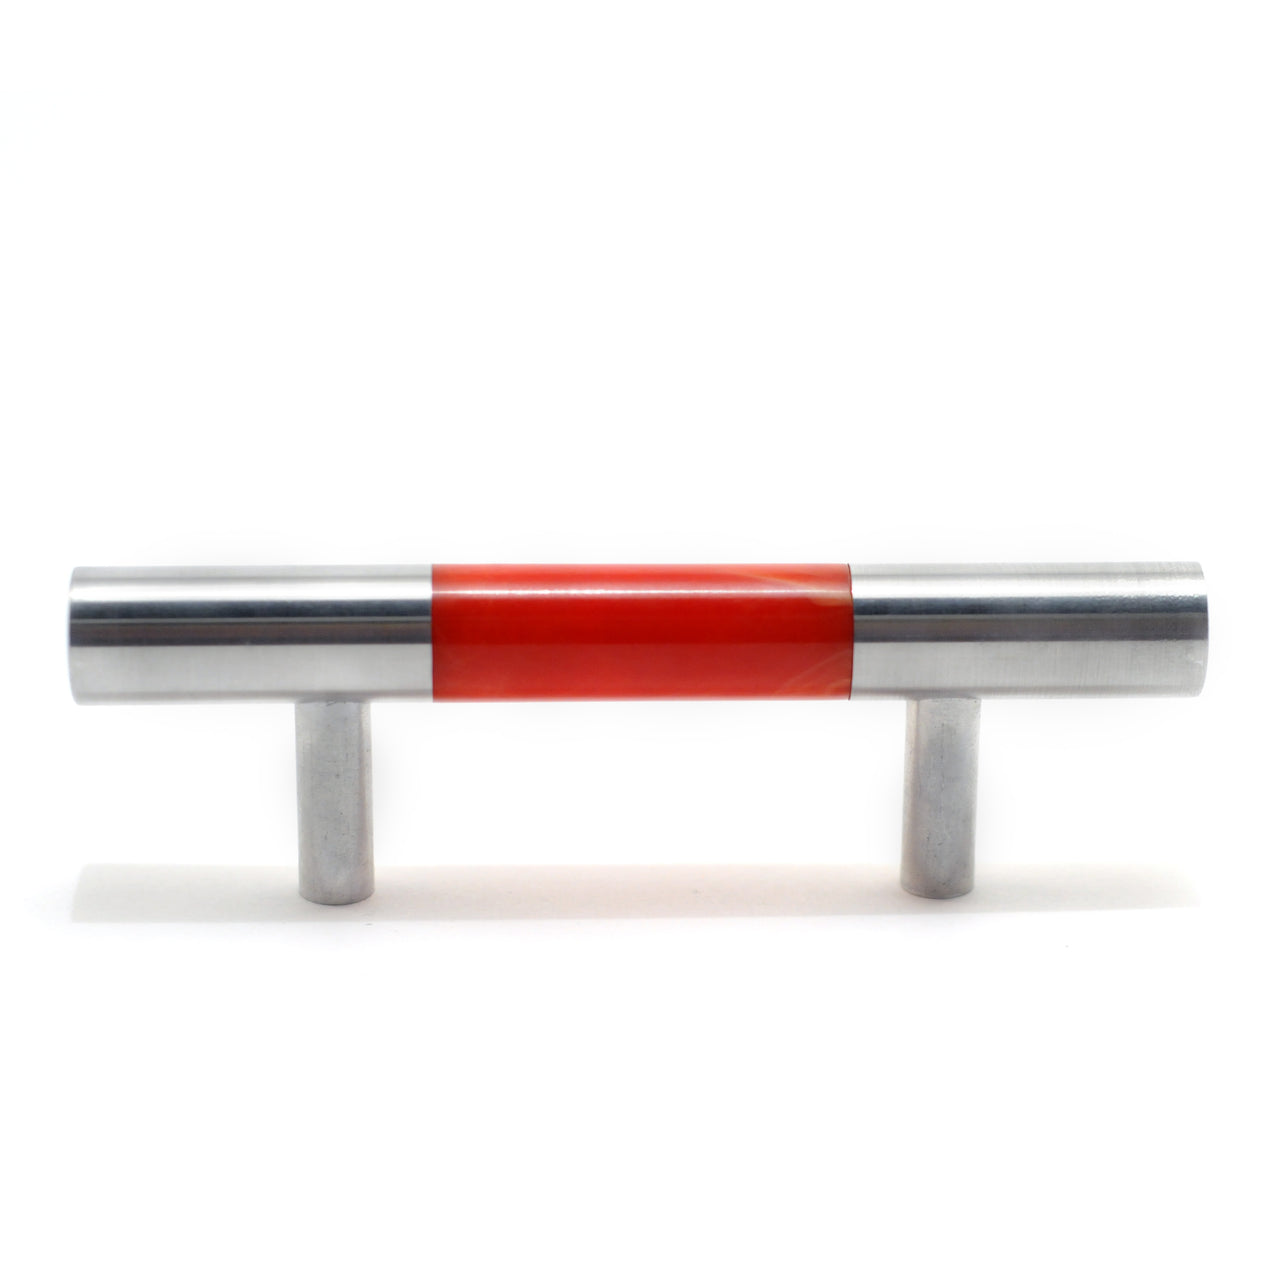 Red Bakelite & Aluminum Cabinet Handle